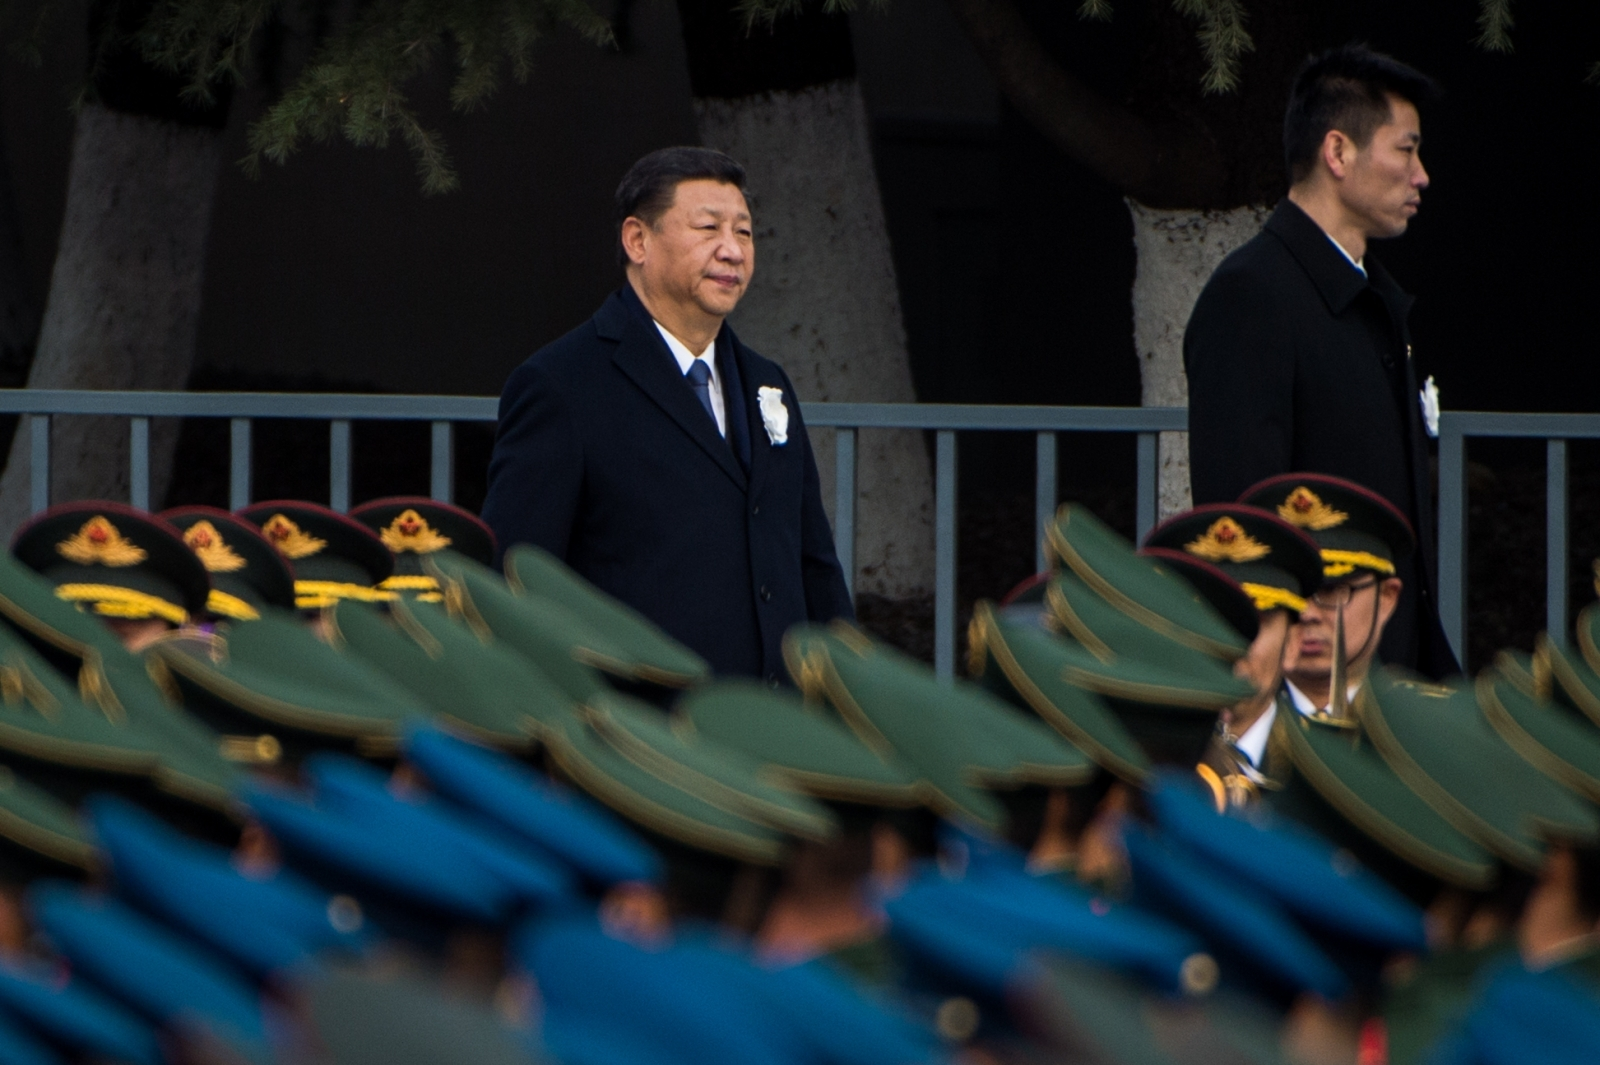 Xi attends state memorial ceremony for Nanjing Massacre victims